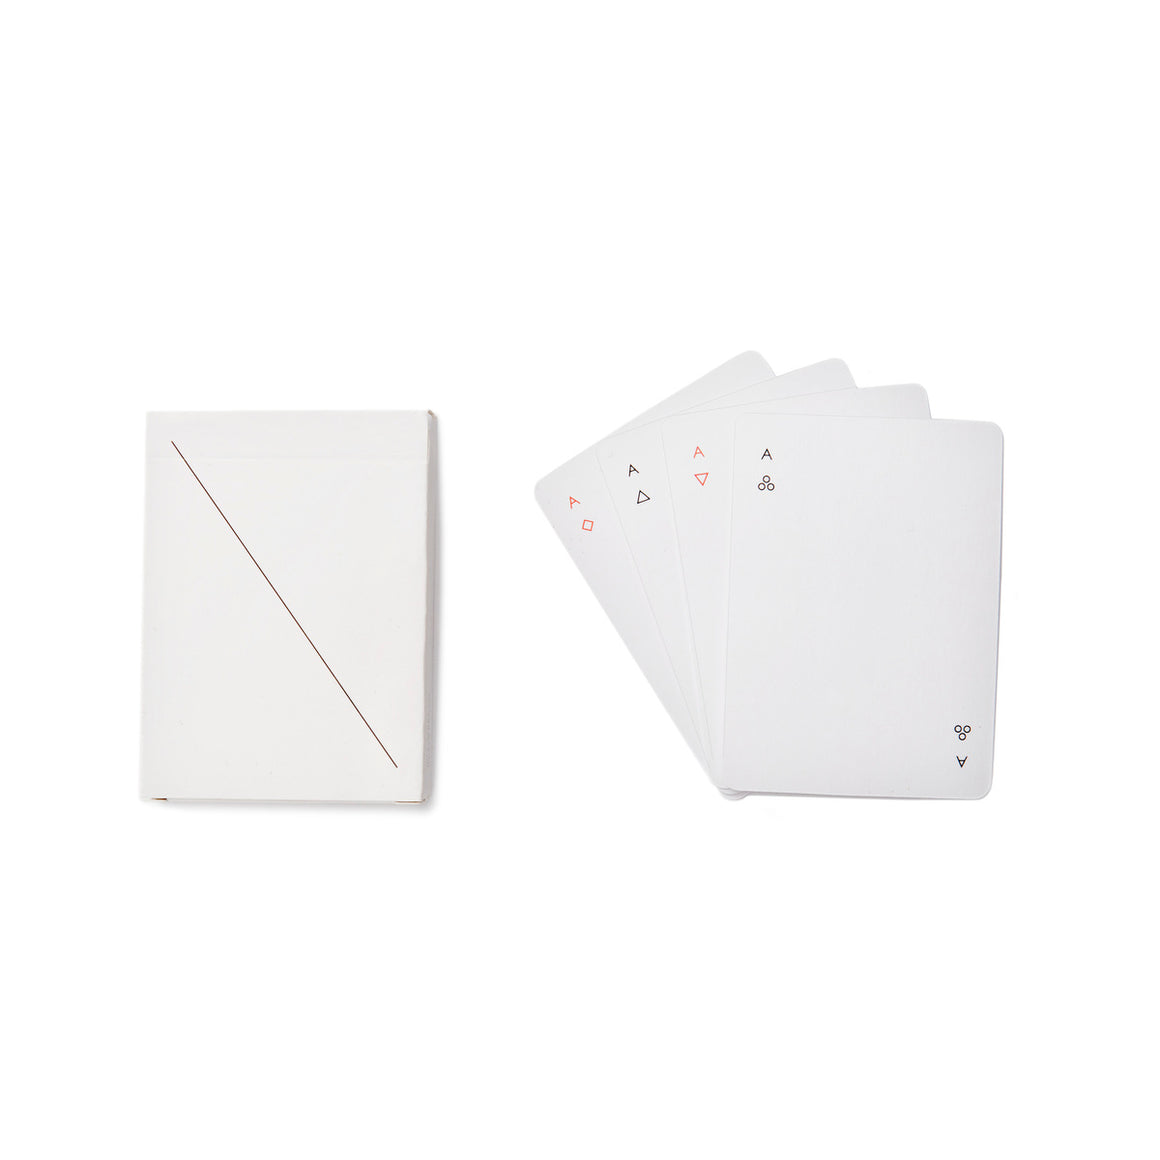 A pack of playing cards with a minimalist style. The cards are mostly white, with simplified symbols. The card pack is shown next to the four aces.